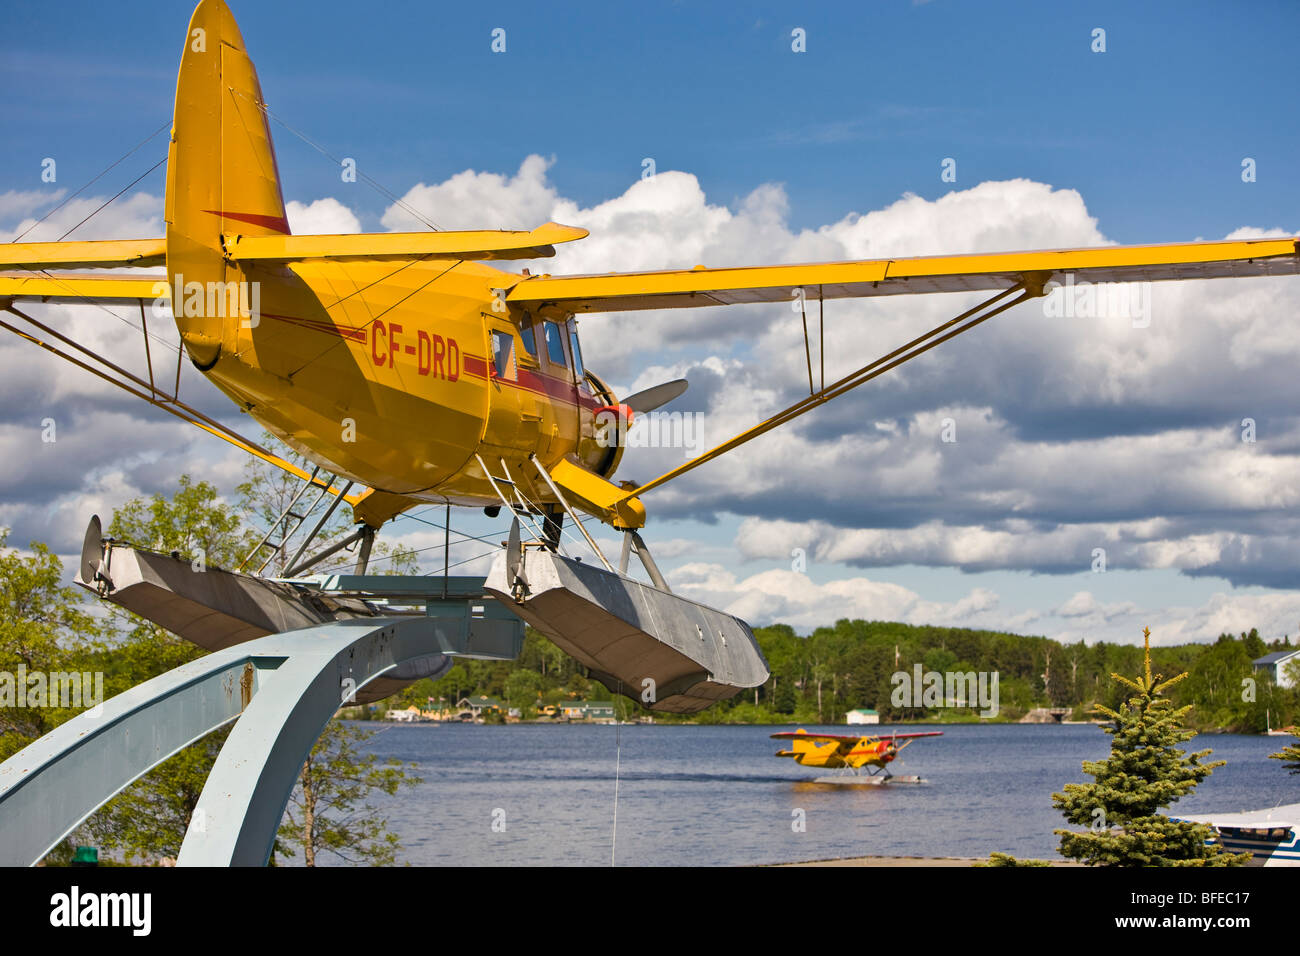 Norseman aircraft on a pedestal in Norseman Heritage Centre Park with an active Norseman Chimo Air Service taxiing - Stock Image